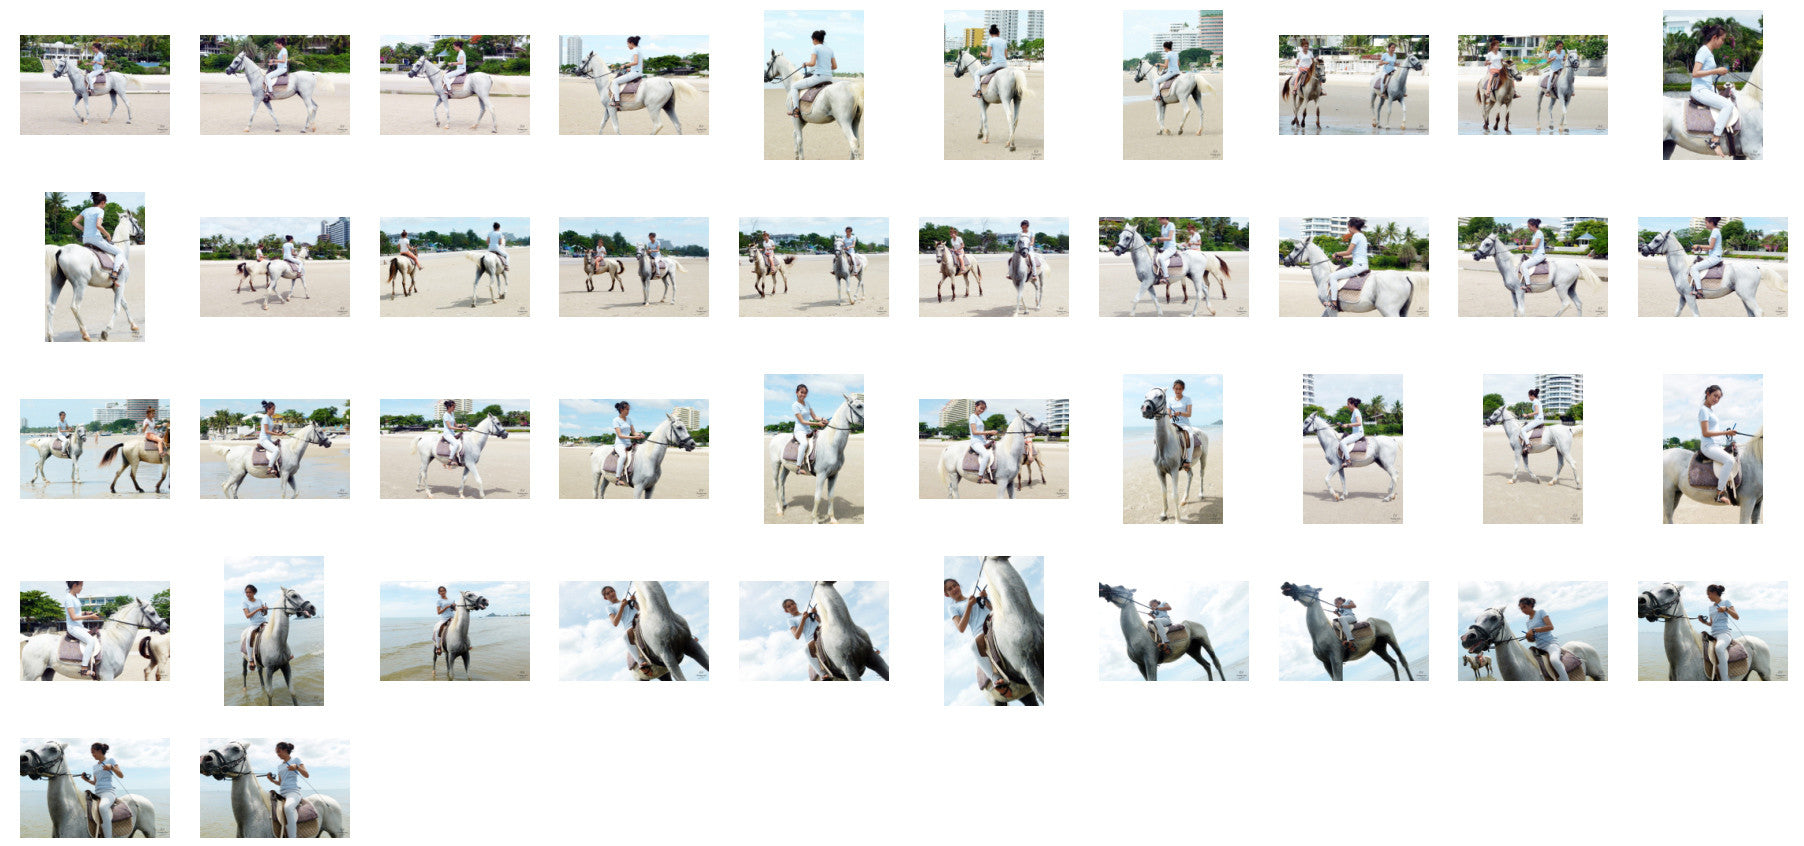 Som in Jodhpurs Riding with Saddle on White Arabian Horse, Part 6 - Riding.Vision